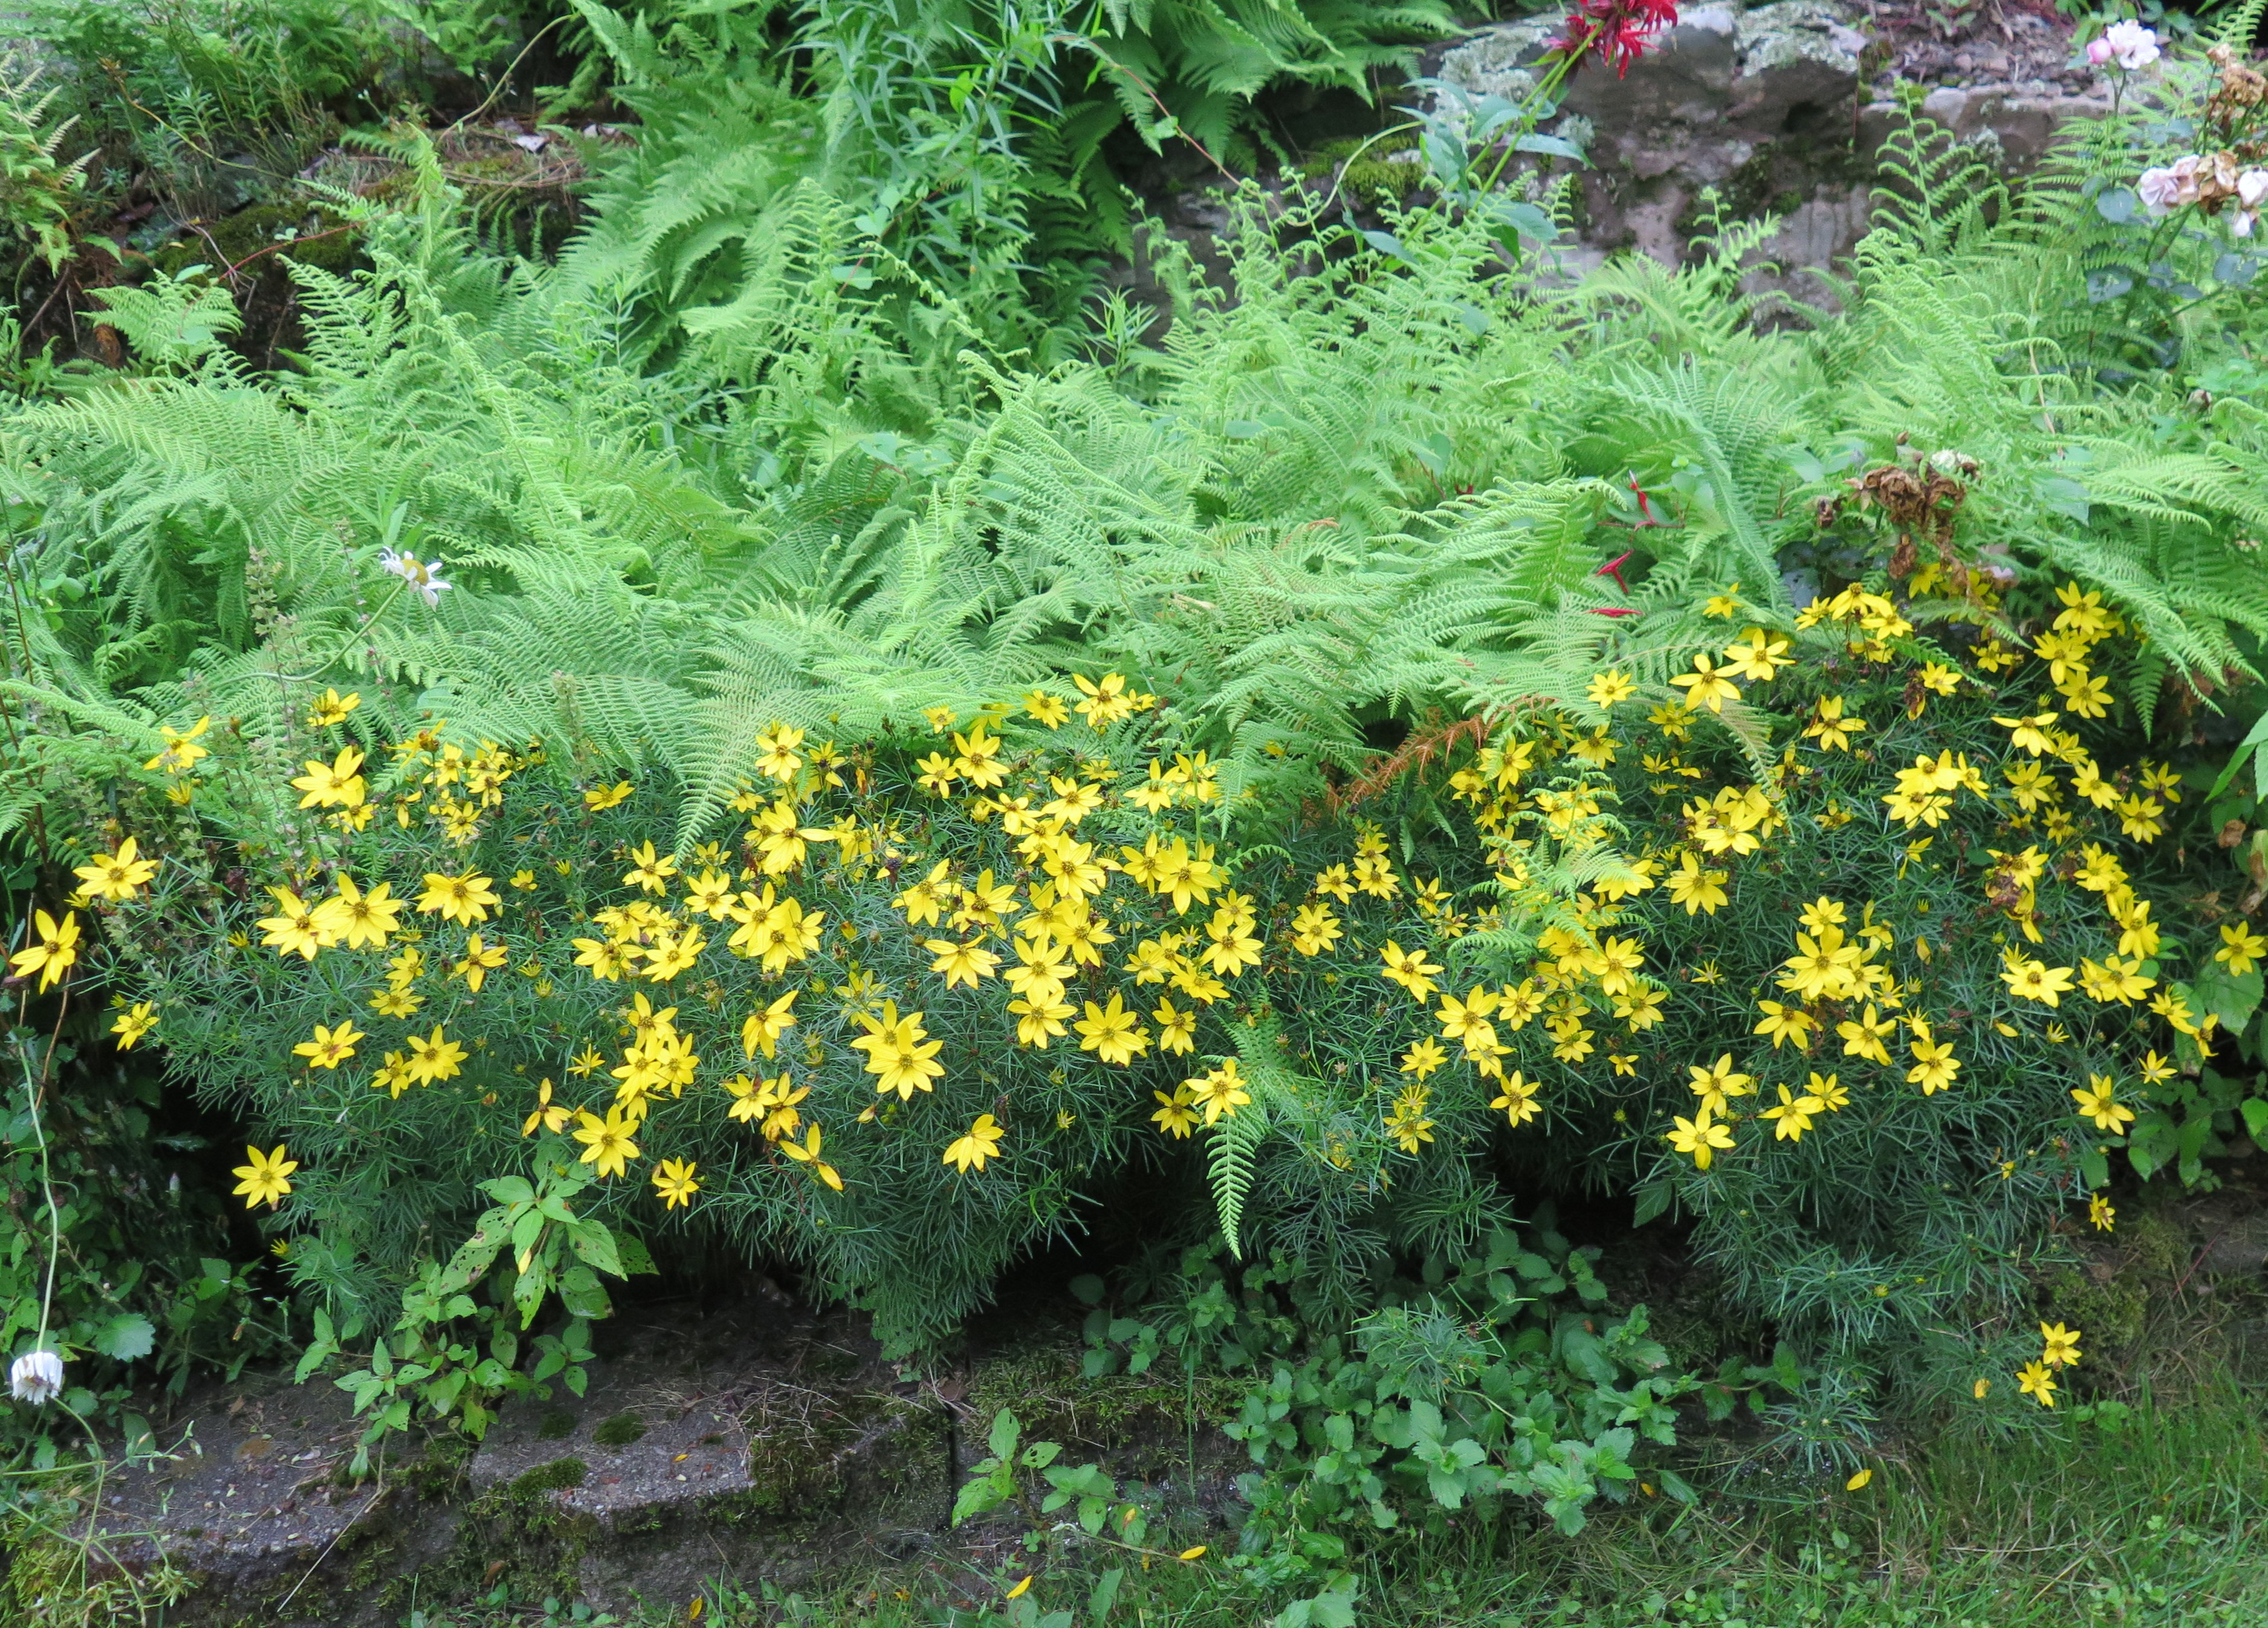 a larger patch of deeper yellow threadleaf coreopsis is a bit stronger pushing its way out of the ferns 015 - Threadleaf Coreopsis